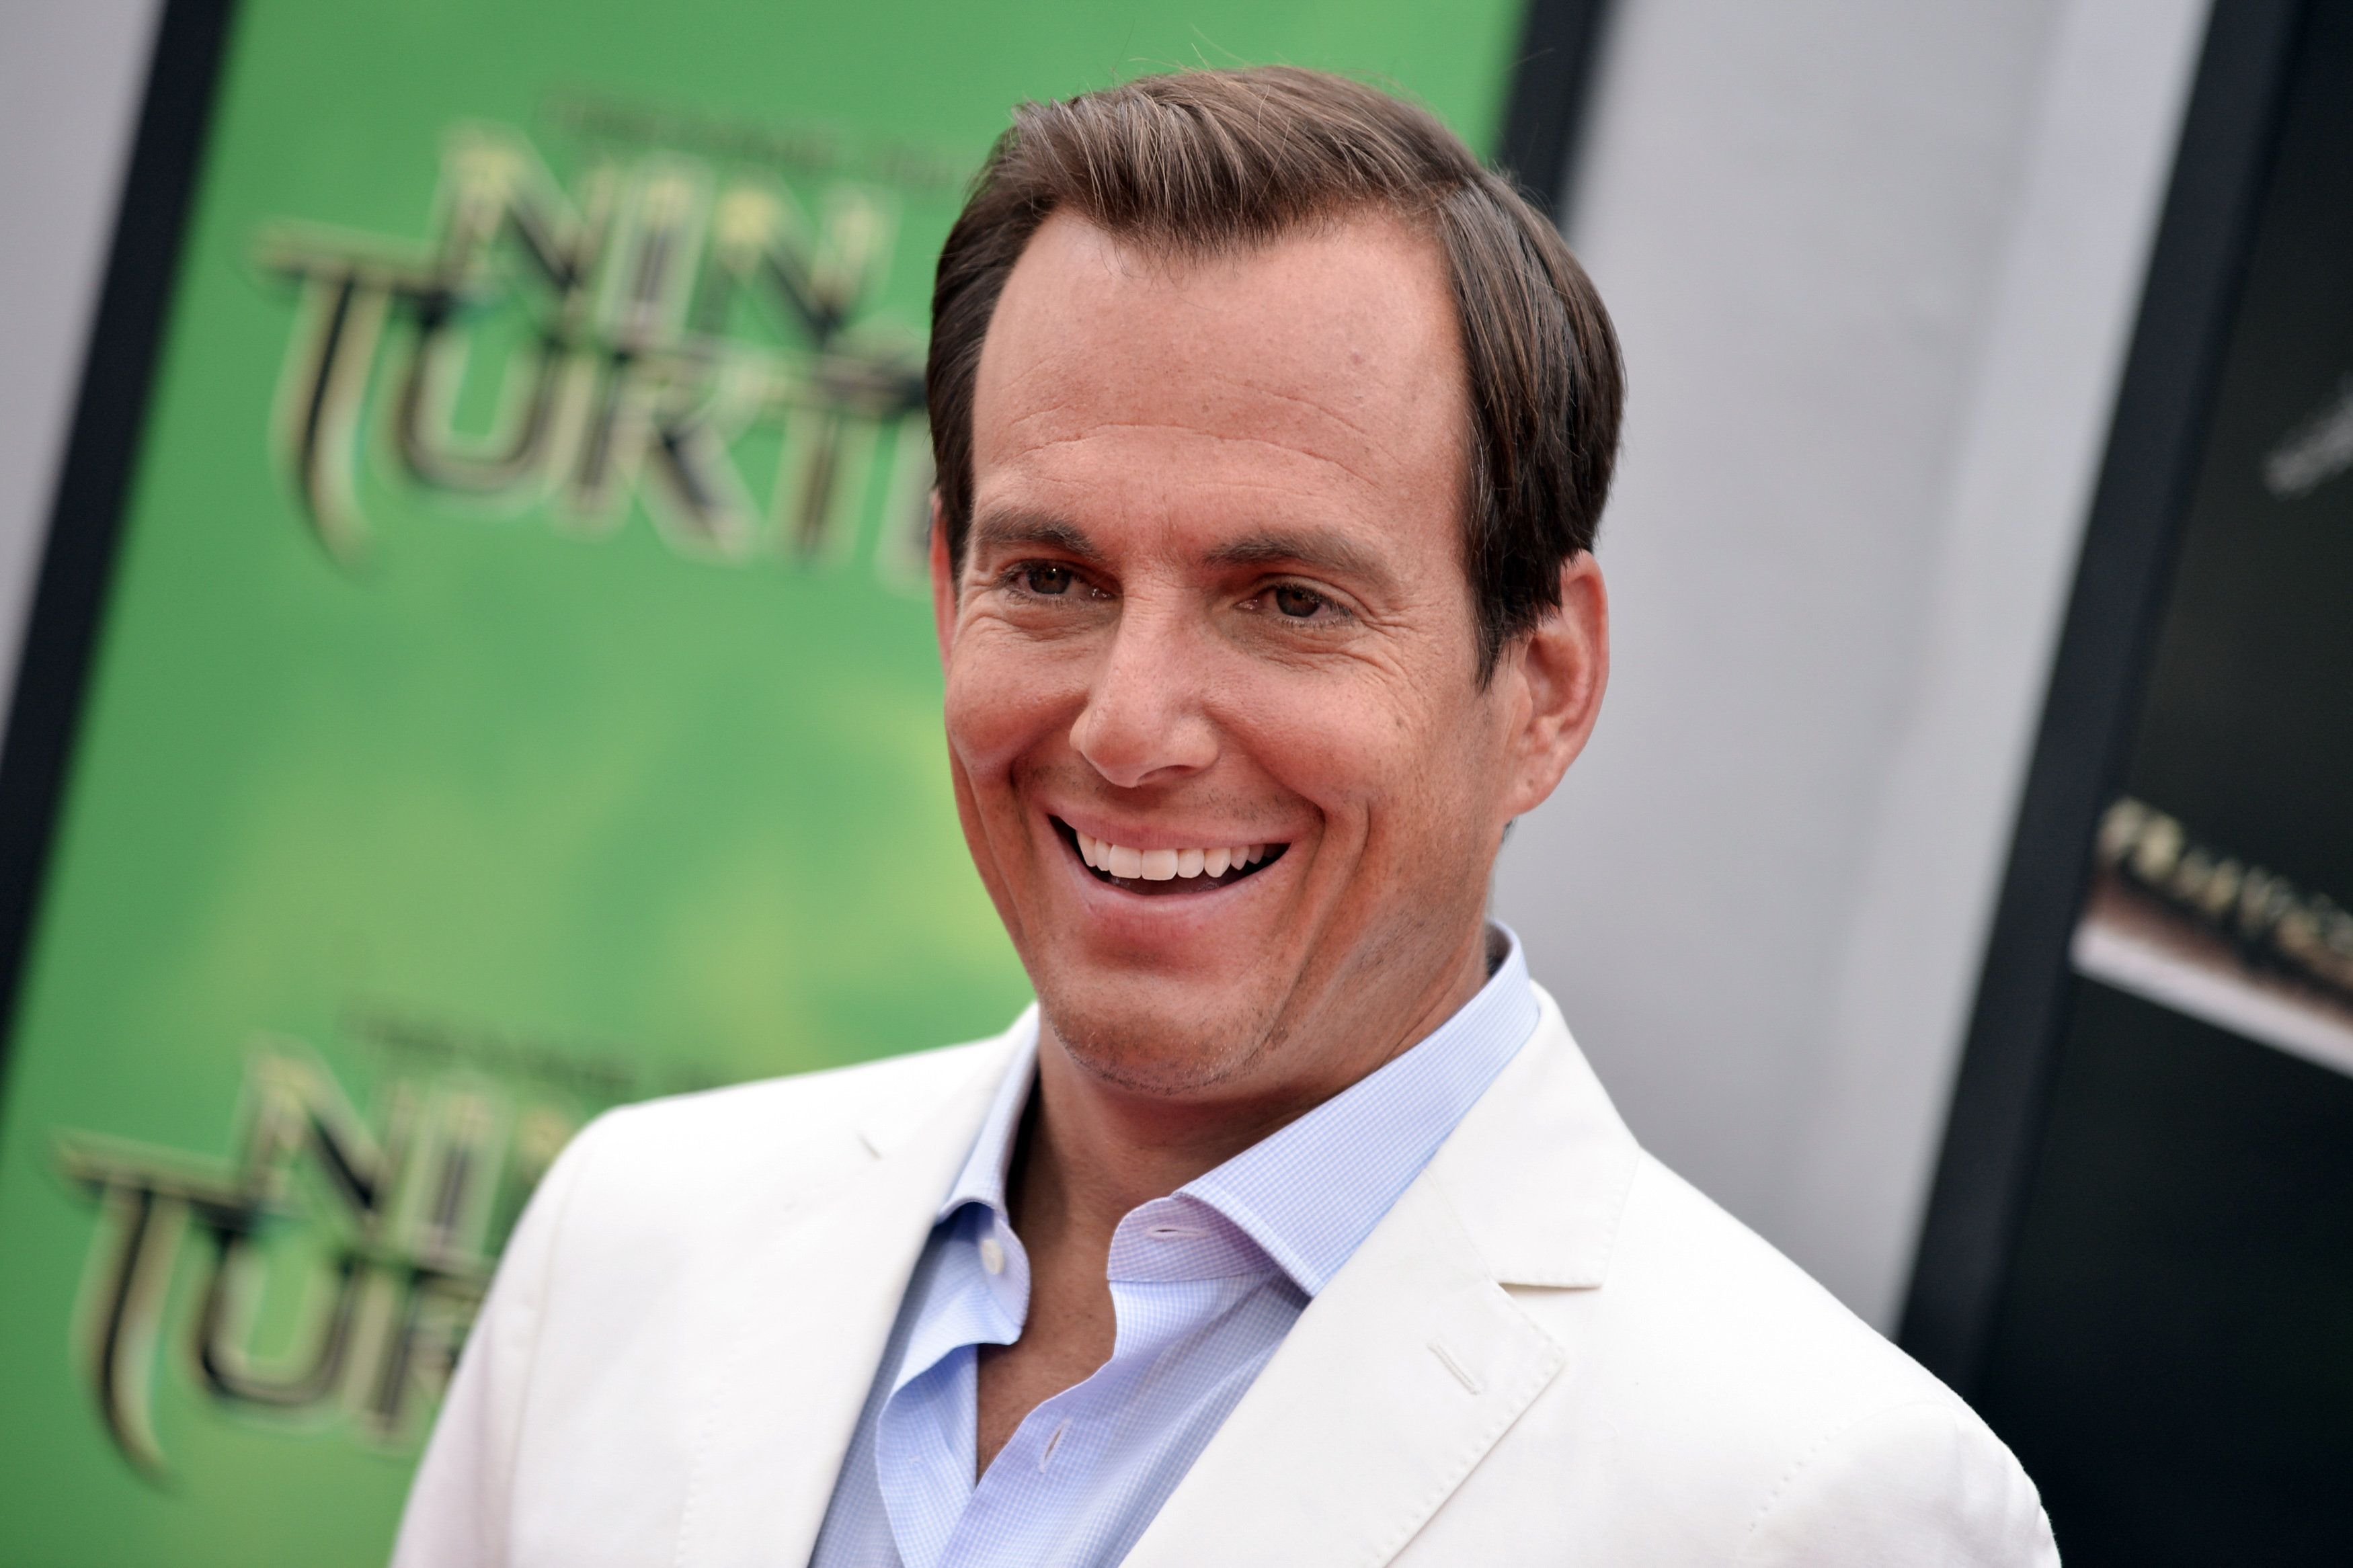 """FILE - In this Aug. 3, 2014 file photo, Will Arnett arrives at the LA Premiere of """"Teenage Mutant Ninja Turtles"""" in Los Angeles. Arnett is producing the new streaming series Game Chat, which features him playing games alongside comedians Peter Giles and Dennis Gubbins in several installments. The show debuts Wednesday, Feb. 11, 2015, and subsequent episodes will launch every other week on Xbox Live and YouTube. (Photo by Richard Shotwell/Invision/AP, File)"""